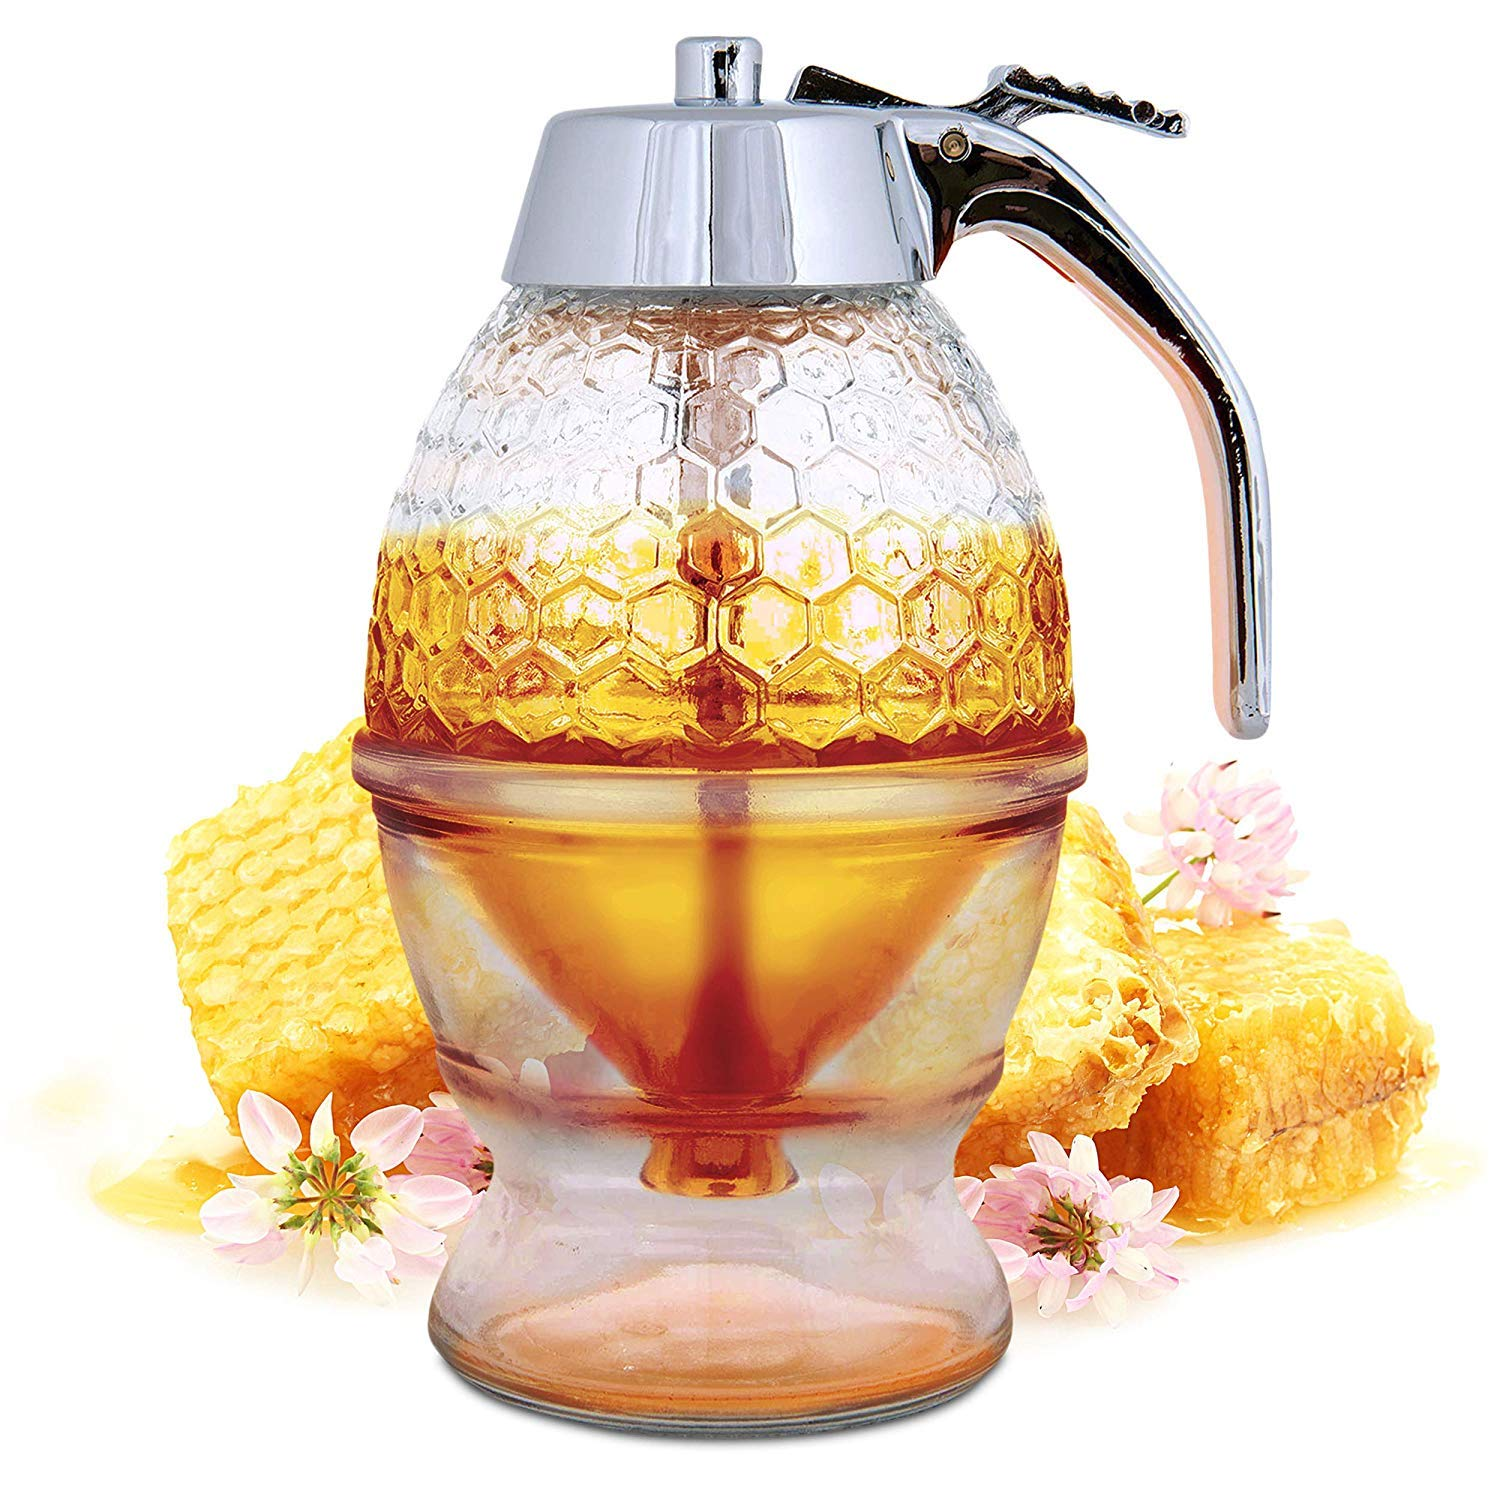 Honey Dispenser No Drip Glass - Maple Syrup Dispenser Glass - Beautiful Honey Comb Shaped Honey Pot - Honey Jar with Stand, Great Bee Decor by Hunnibi